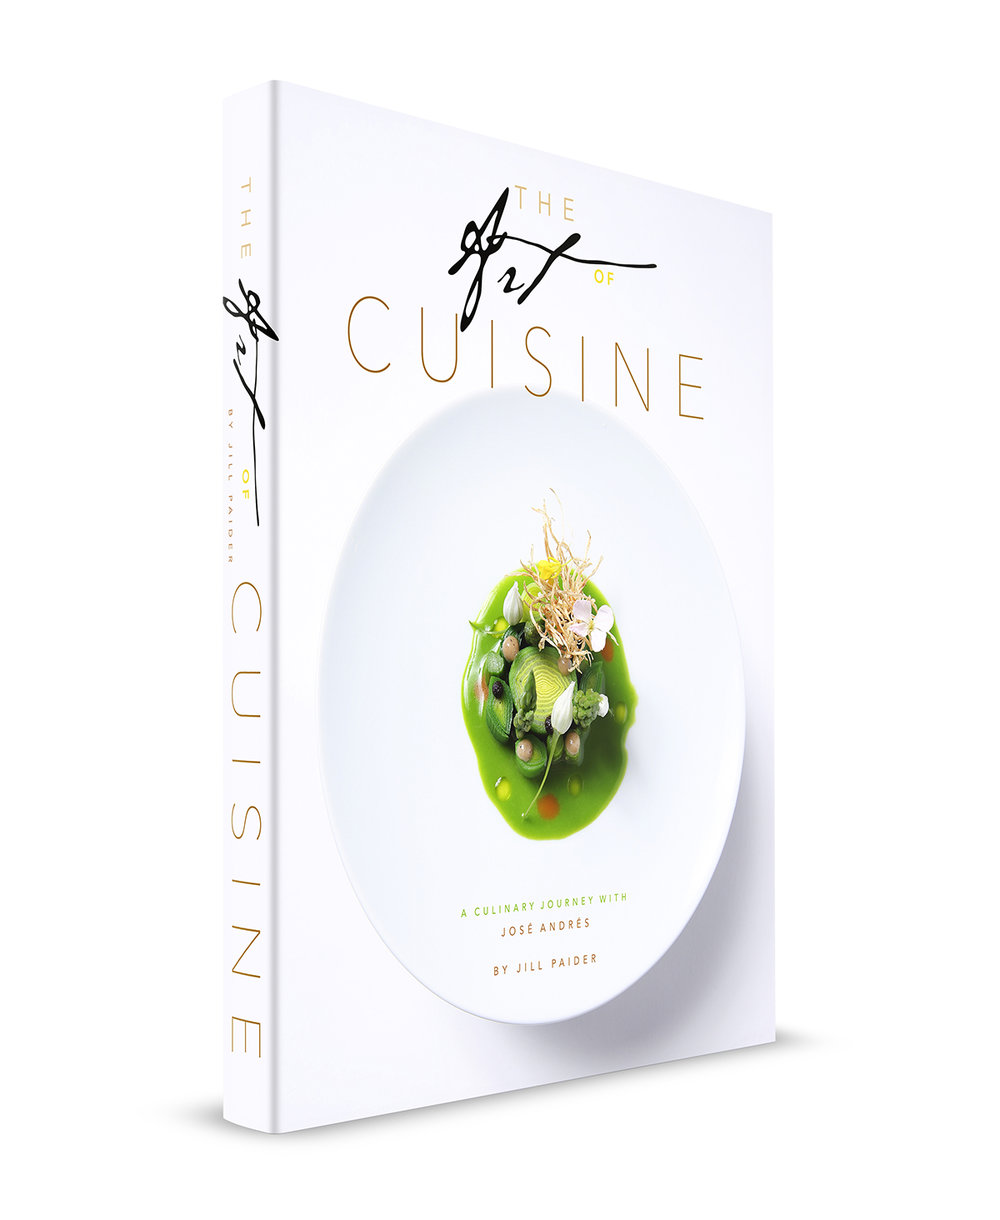 THE ART OF CUISINE - LIMITED EDITION PRINT